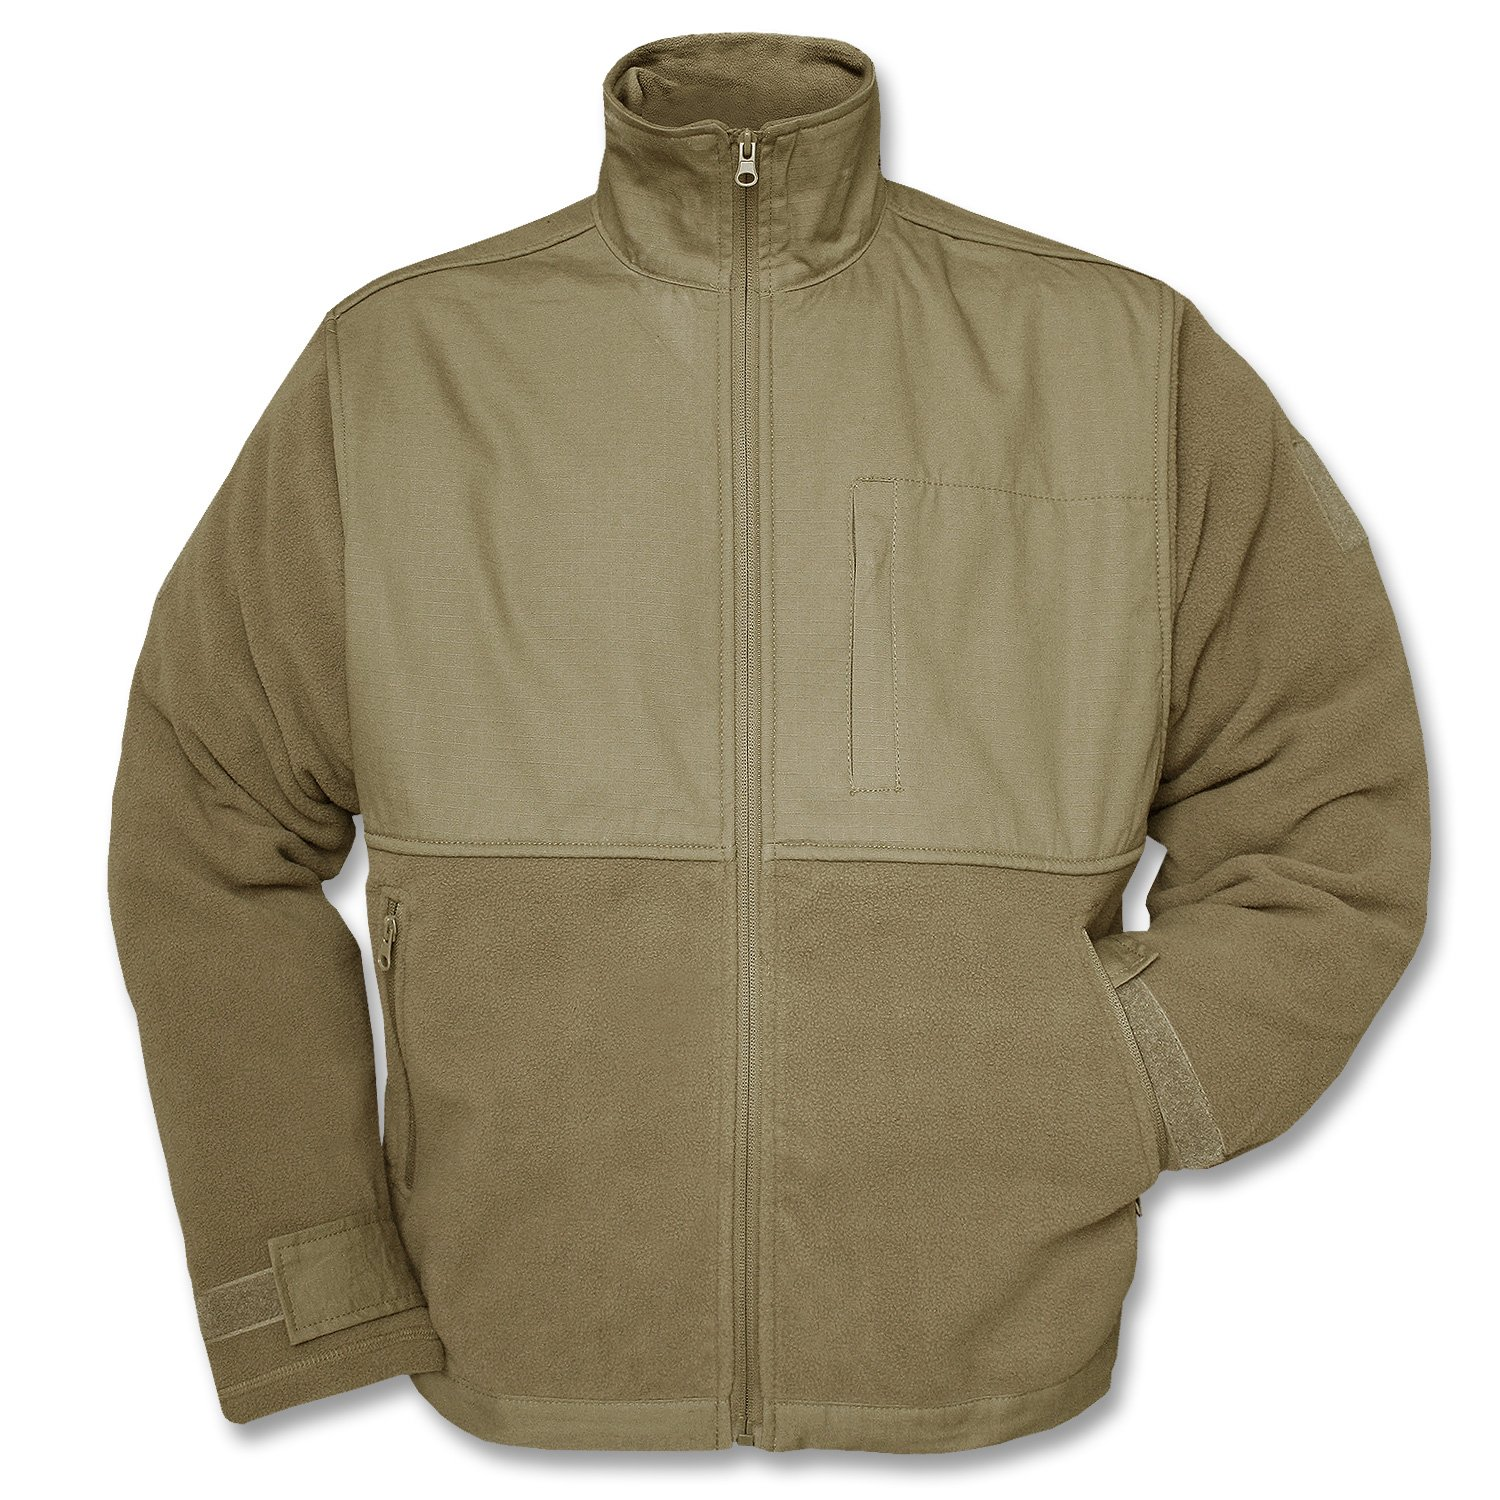 Mil-Tec Coyote Fleece Jacket with Patch - 10855005